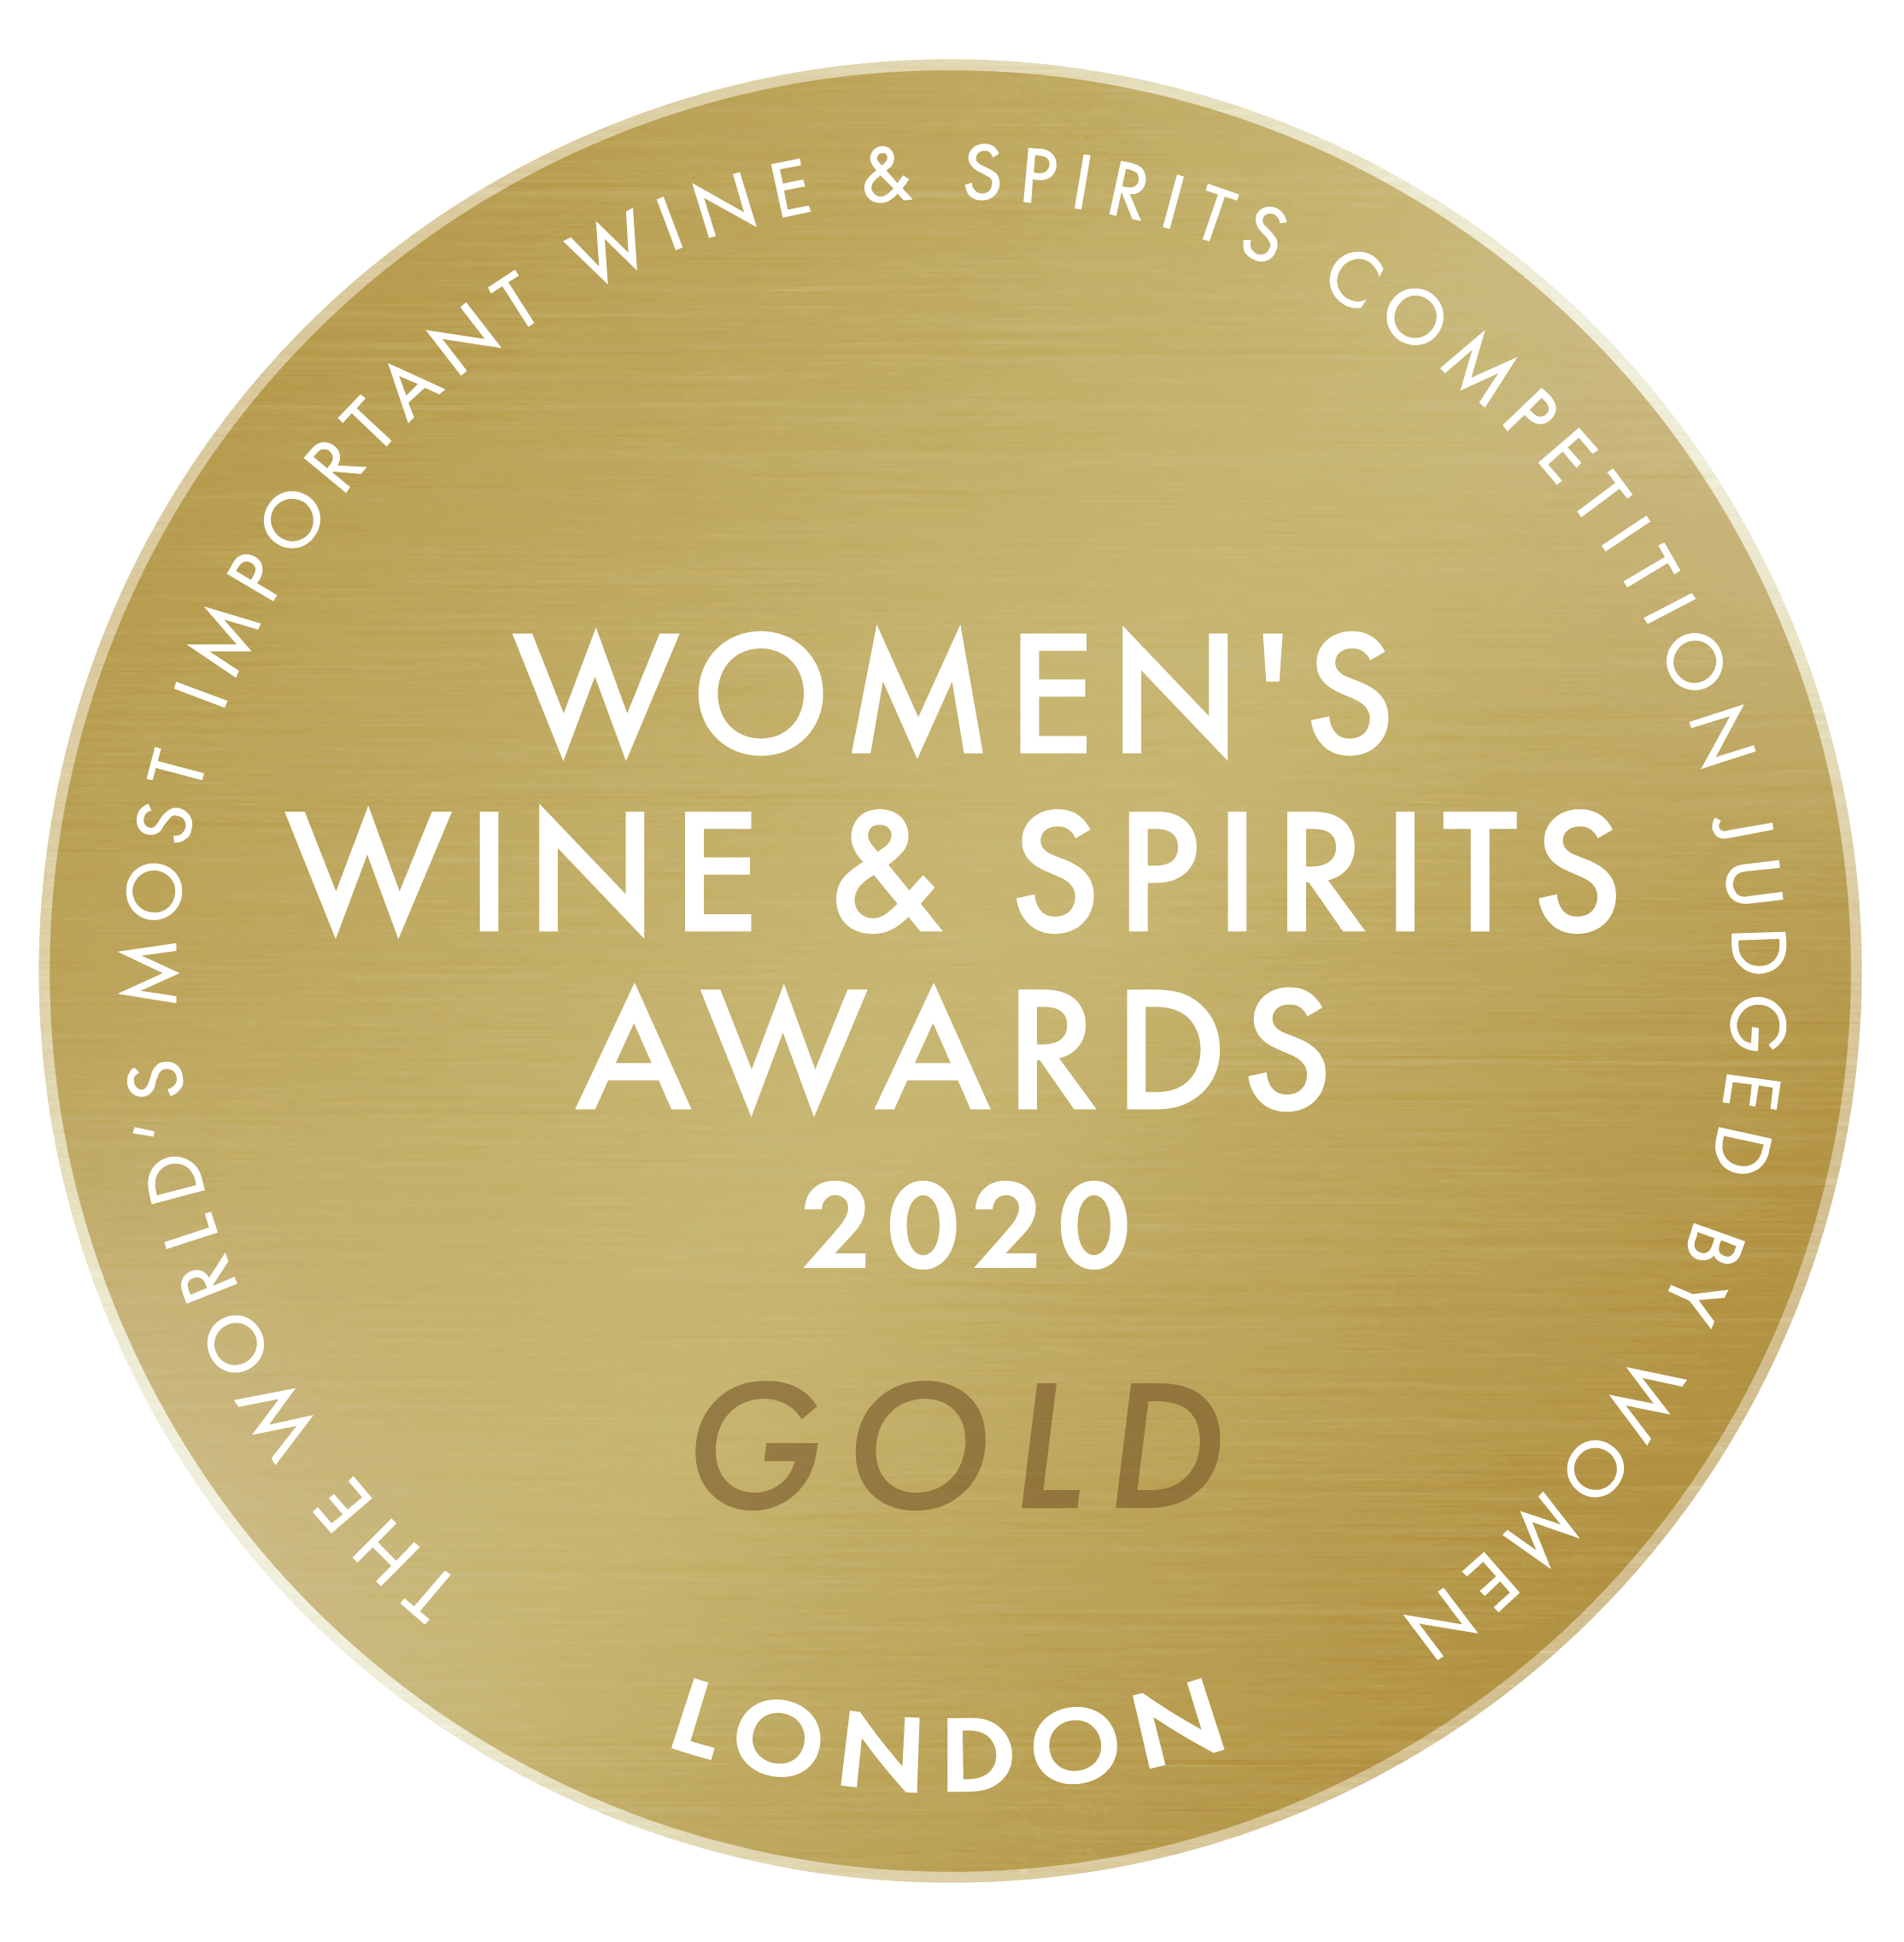 womens wine spirits award, spirits award, gold medal pisco, gold medal